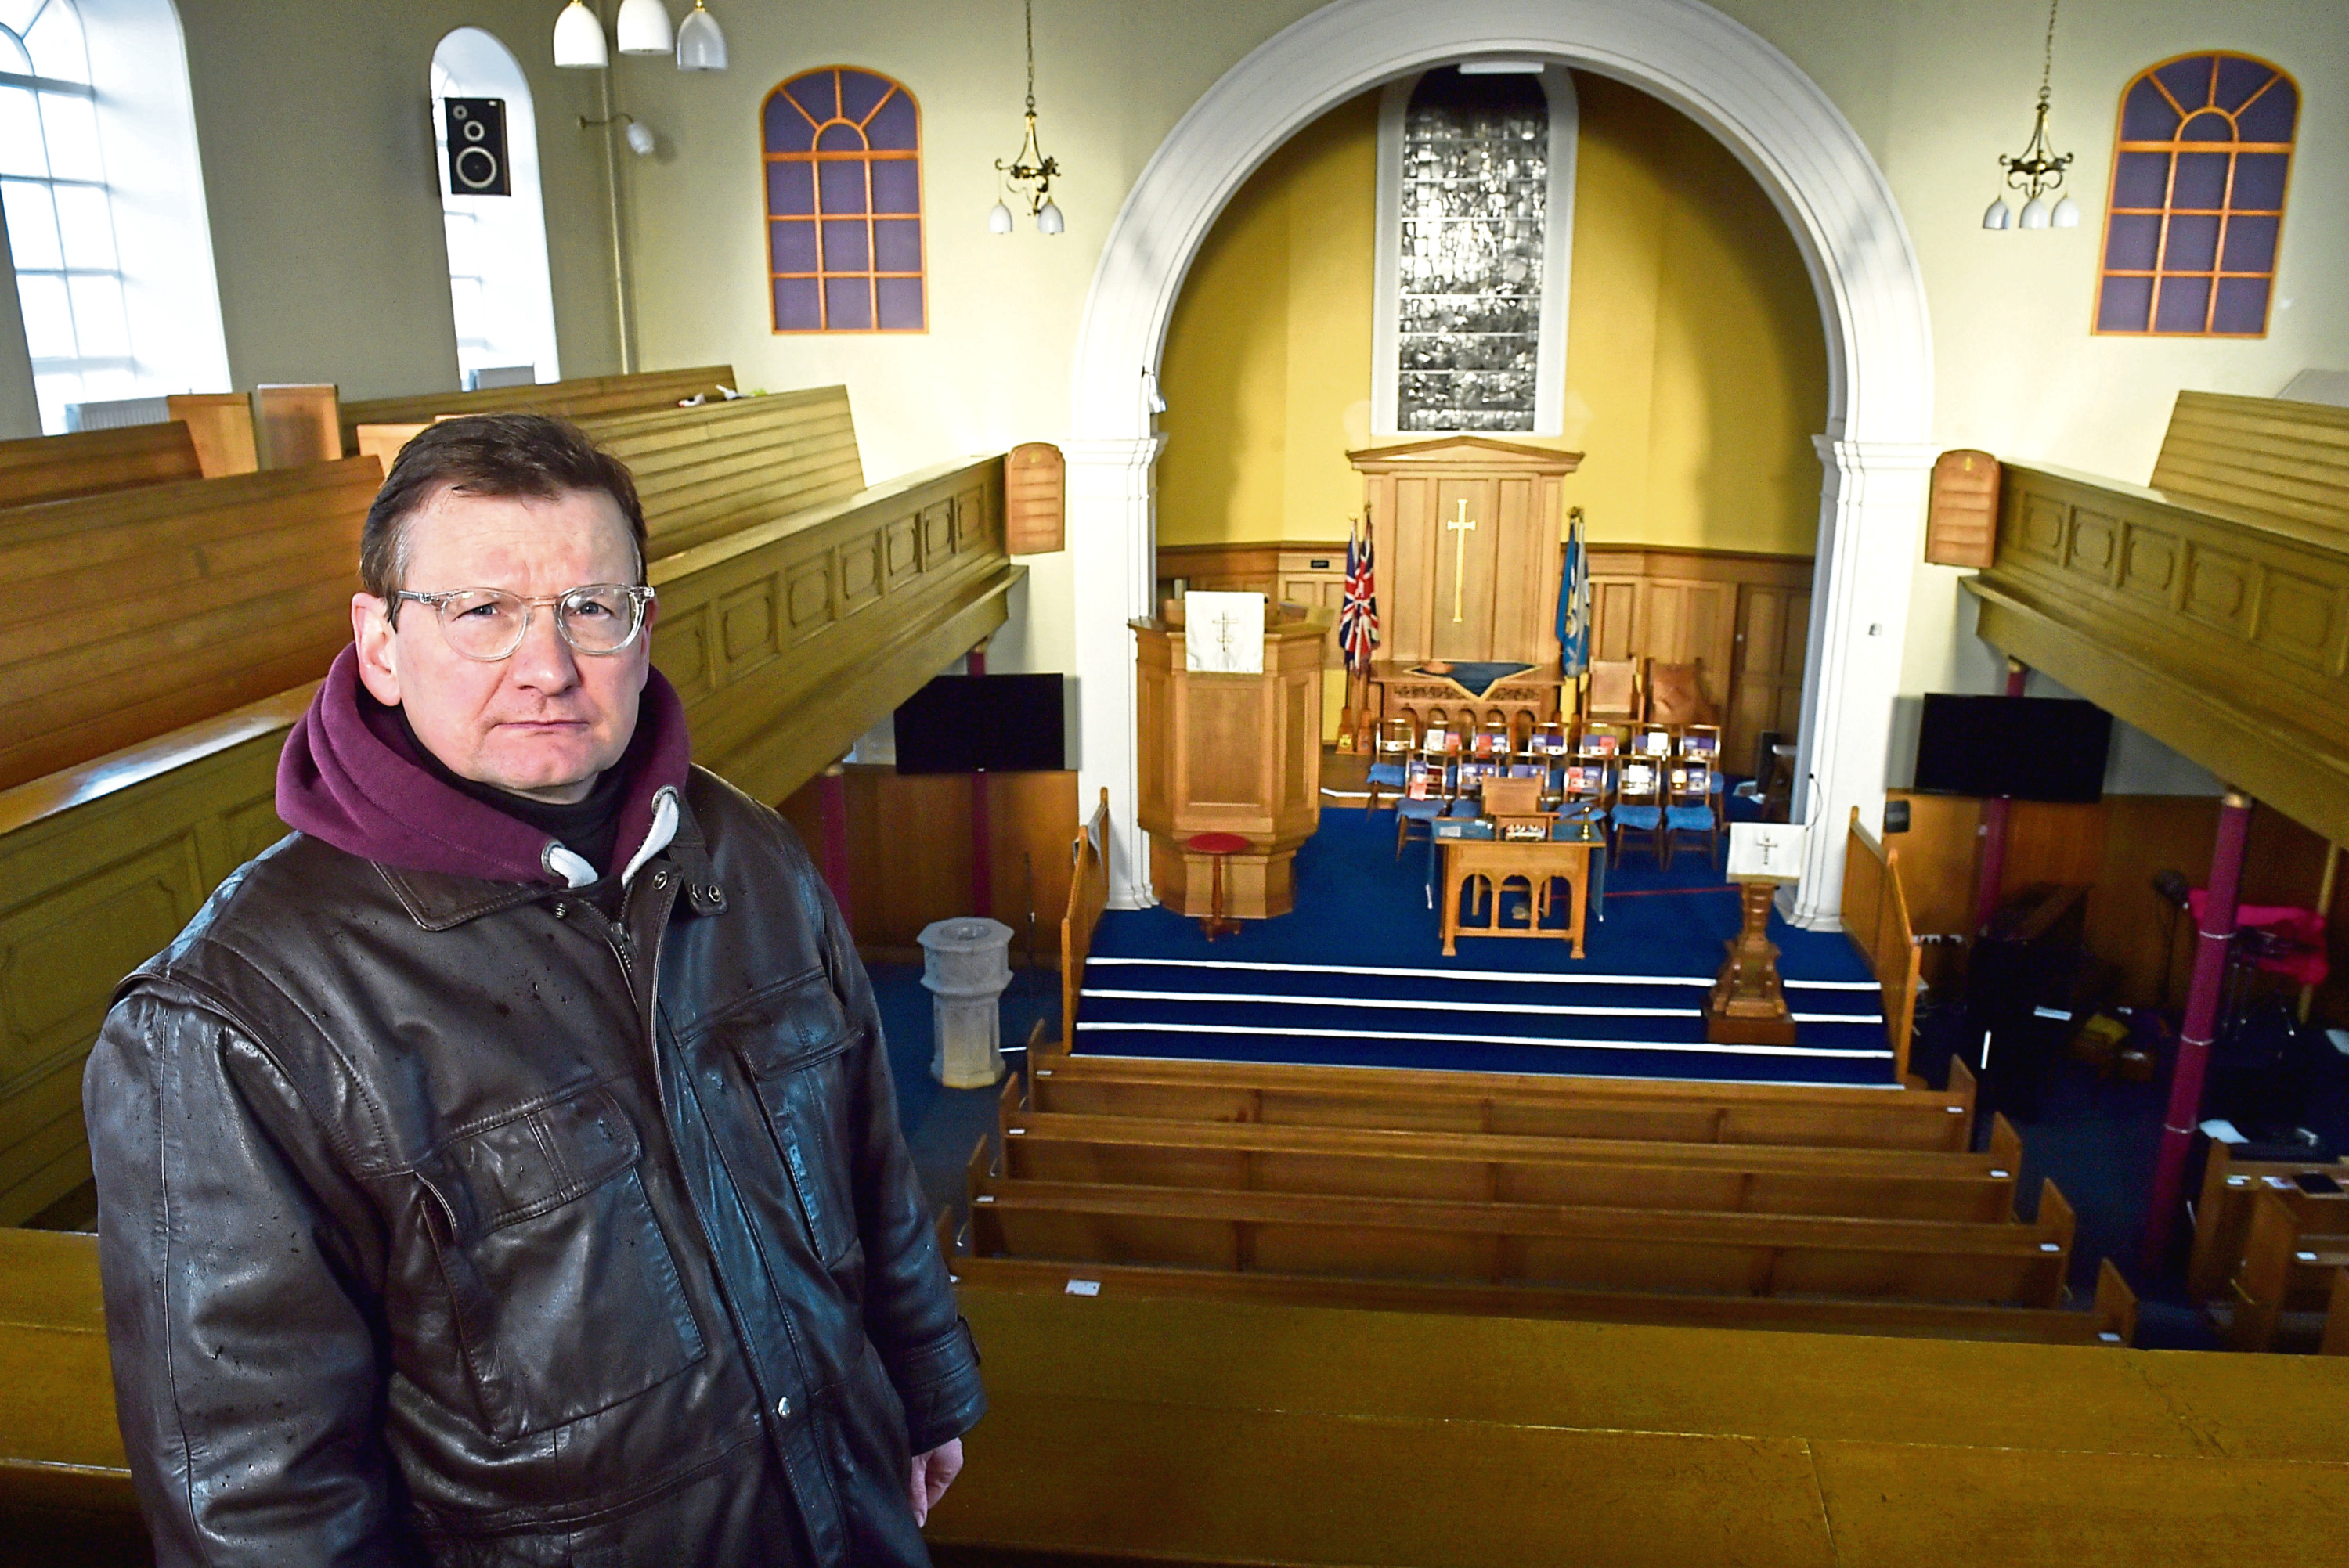 Rev Markus Auffermann fears the community will suffer.